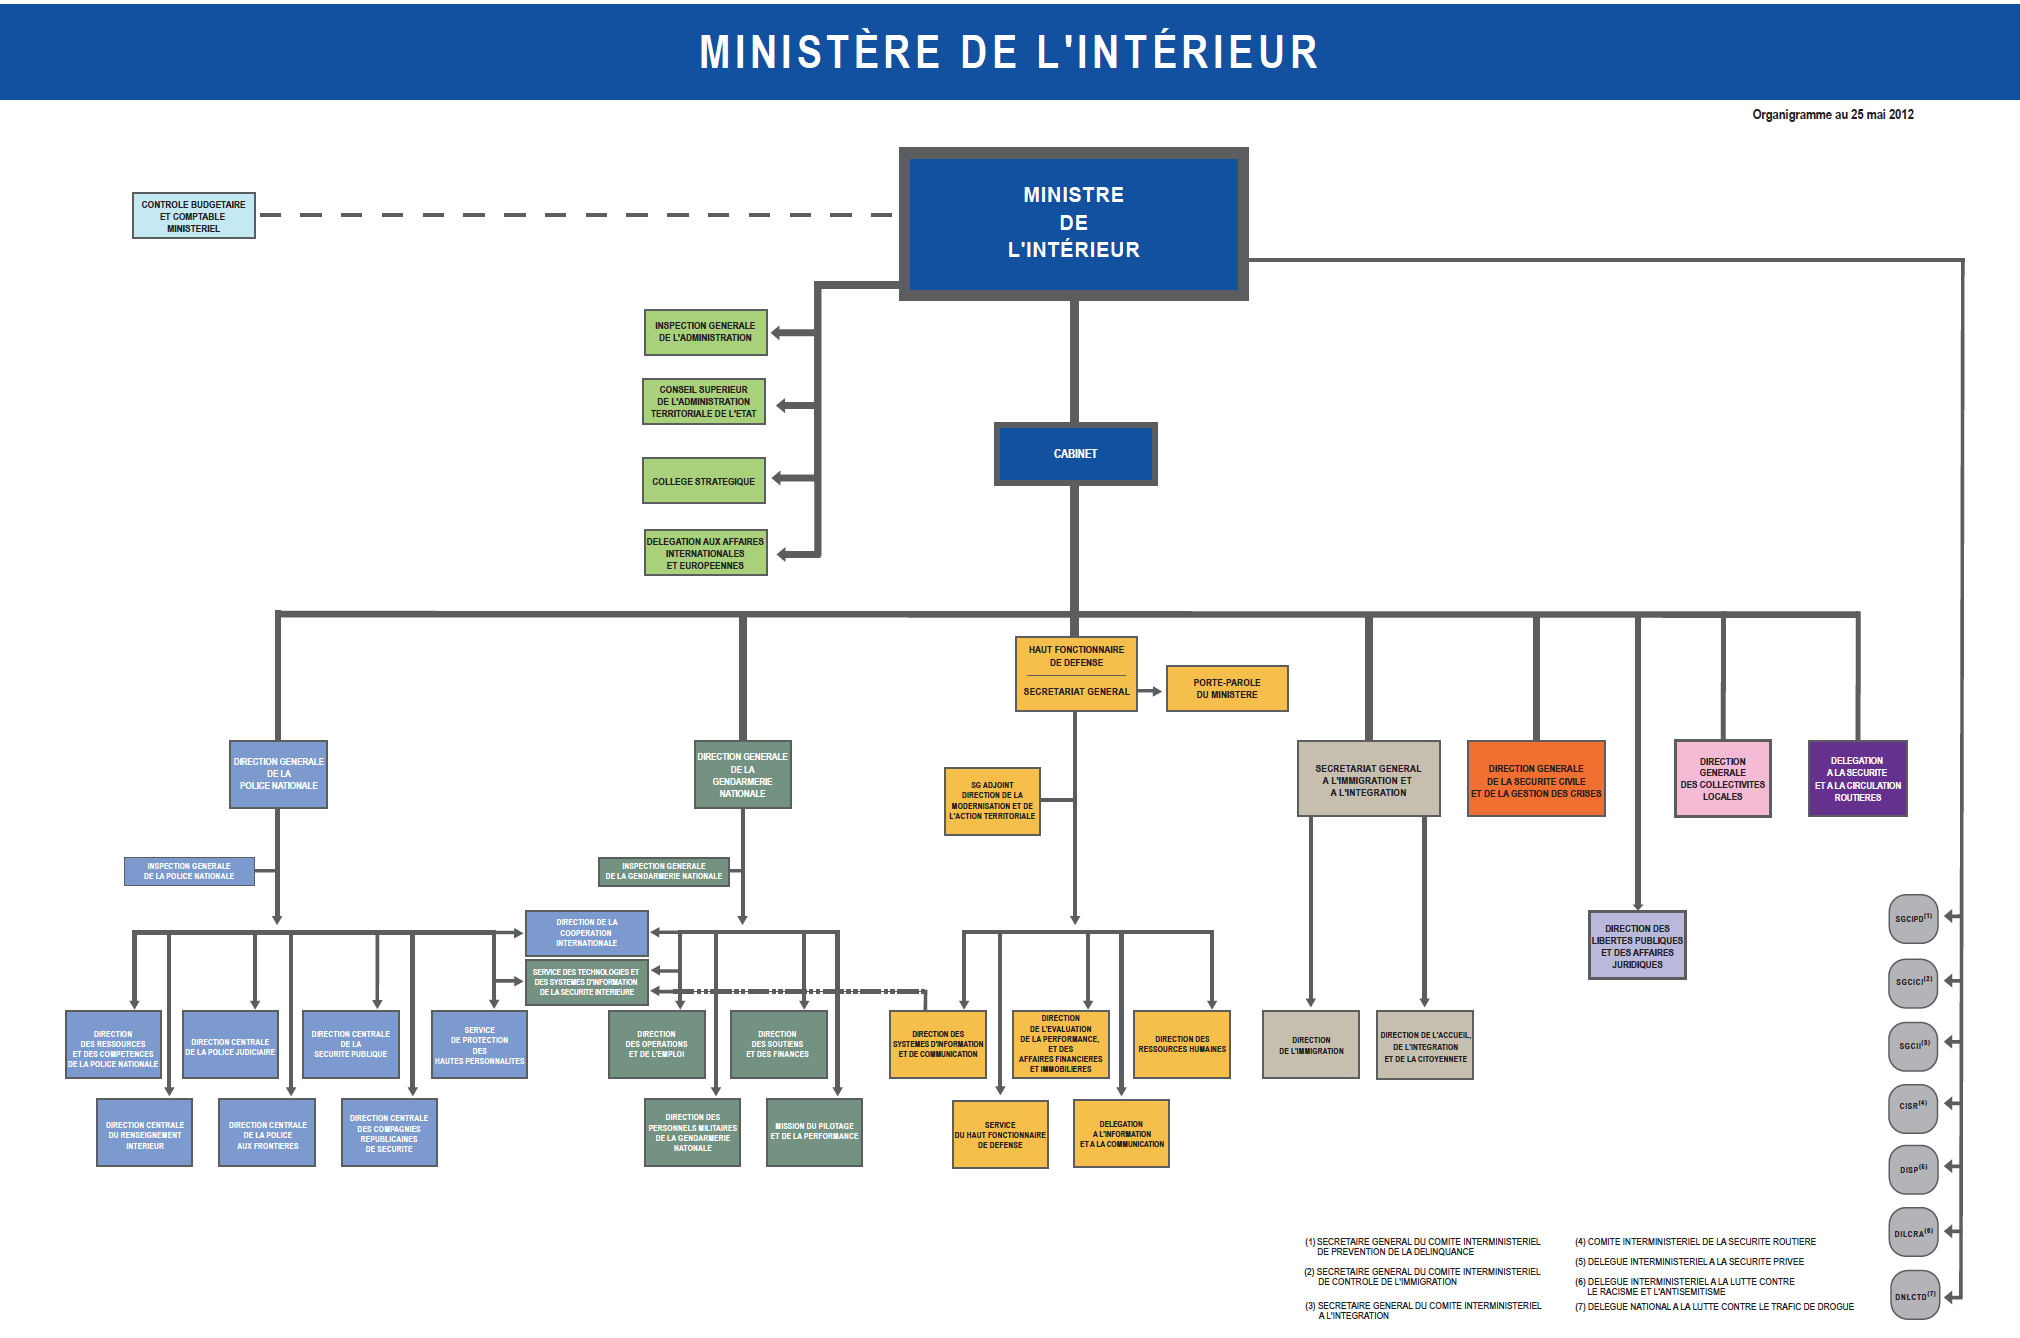 Organigramme minist re de l 39 int rieur concours interne for Ministere exterieur france